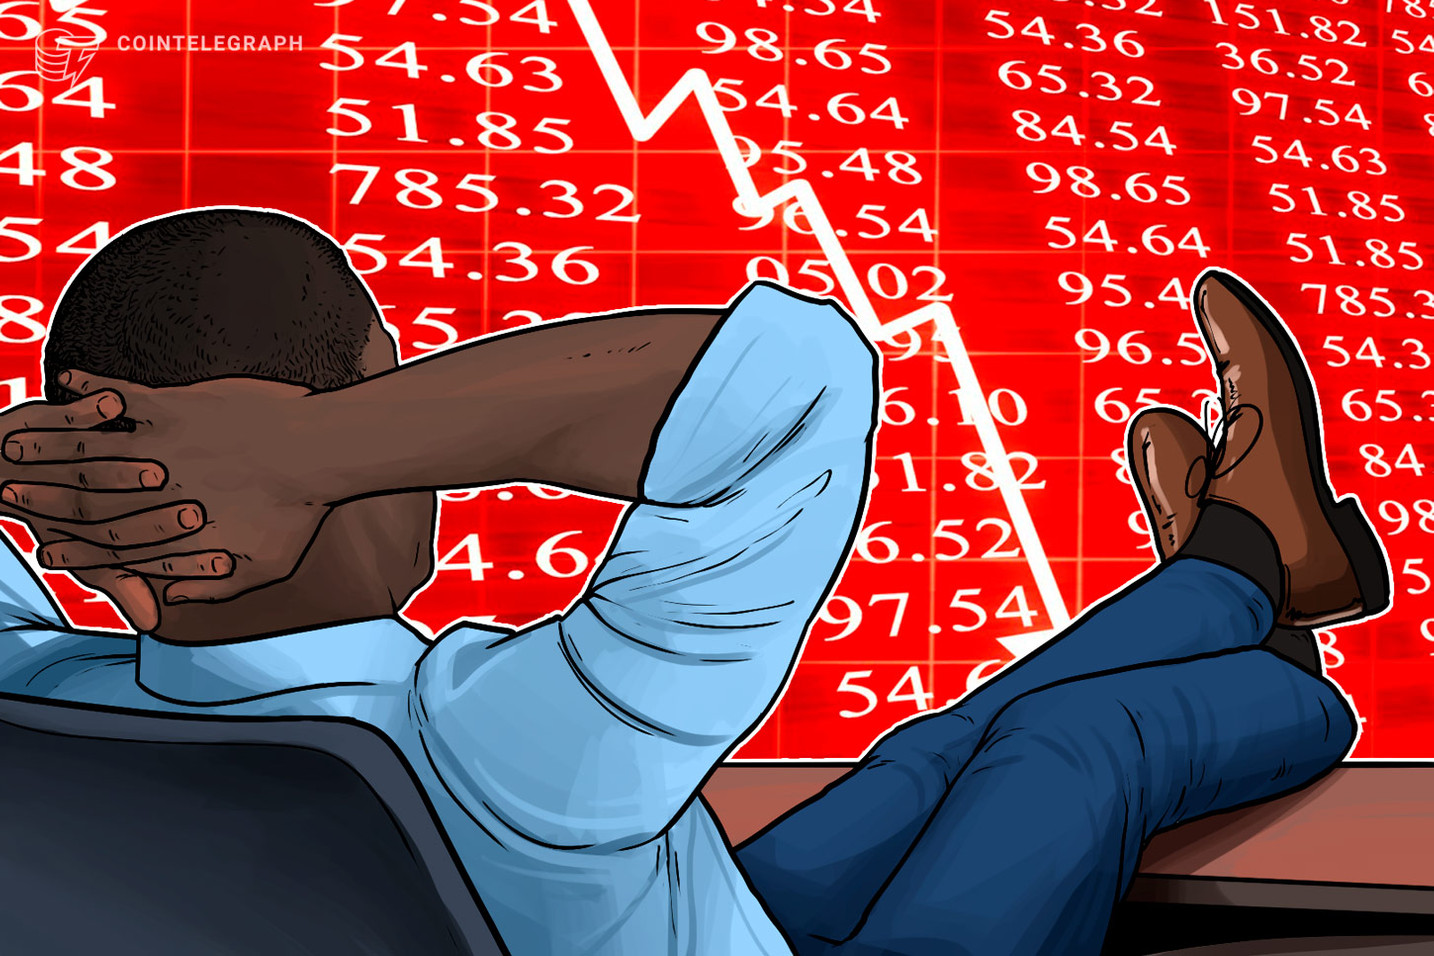 Bitcoin Hovers Near $5,100 as Top Cryptos See Slight Losses